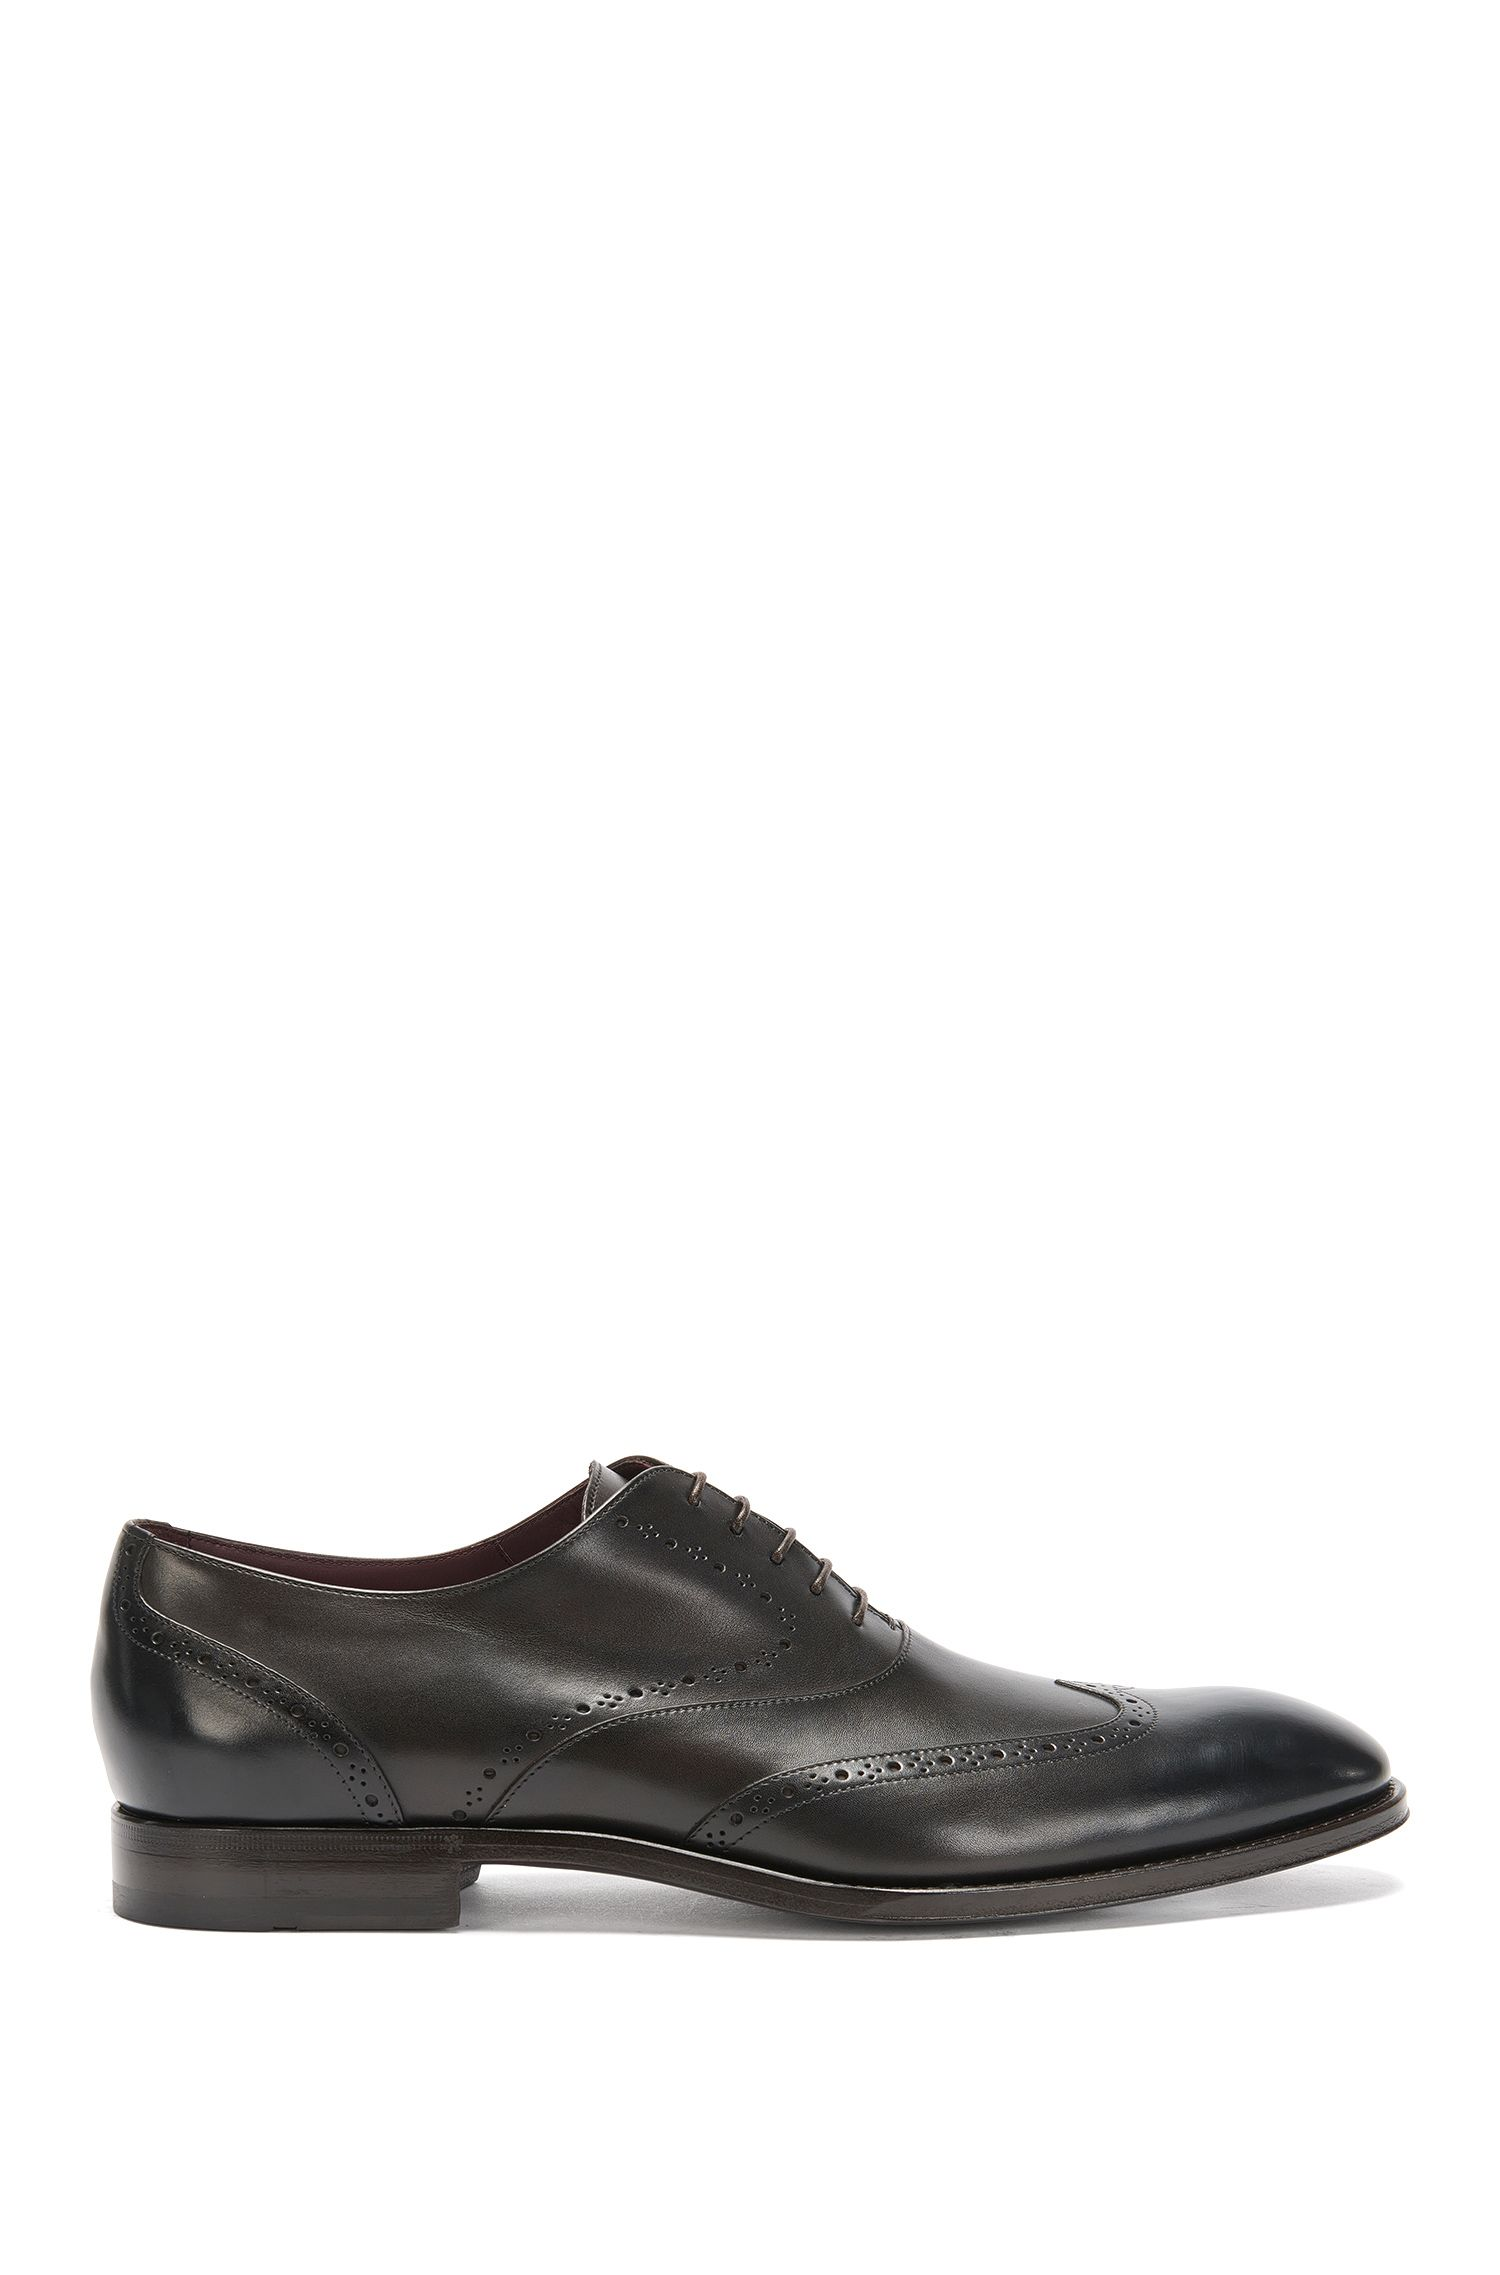 Italian Calfskin Oxford Wingtip Dress Shoe | T-Legend Oxfr Wt